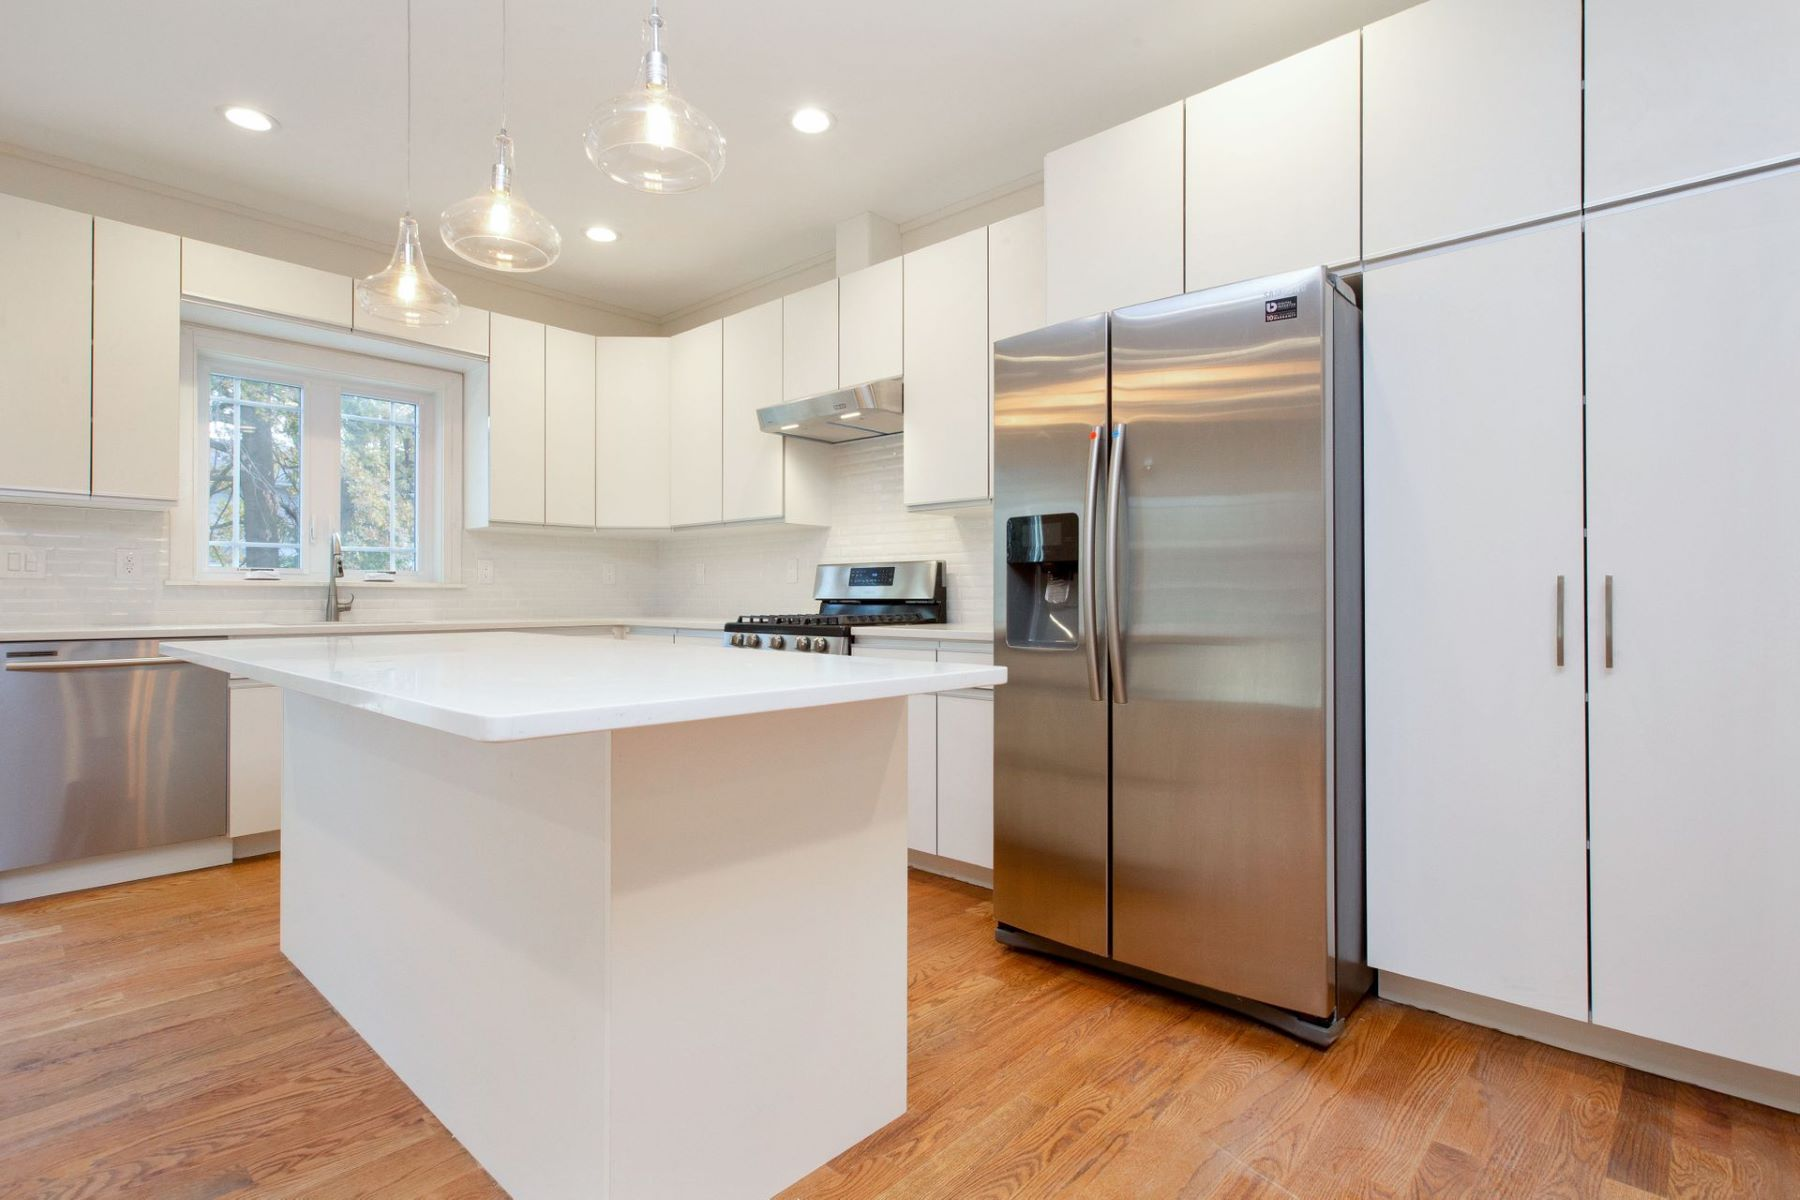 Multi-Family Home for Rent at Stunning Details 116 Hickory Avenue, Tenafly, New Jersey 07670 United States